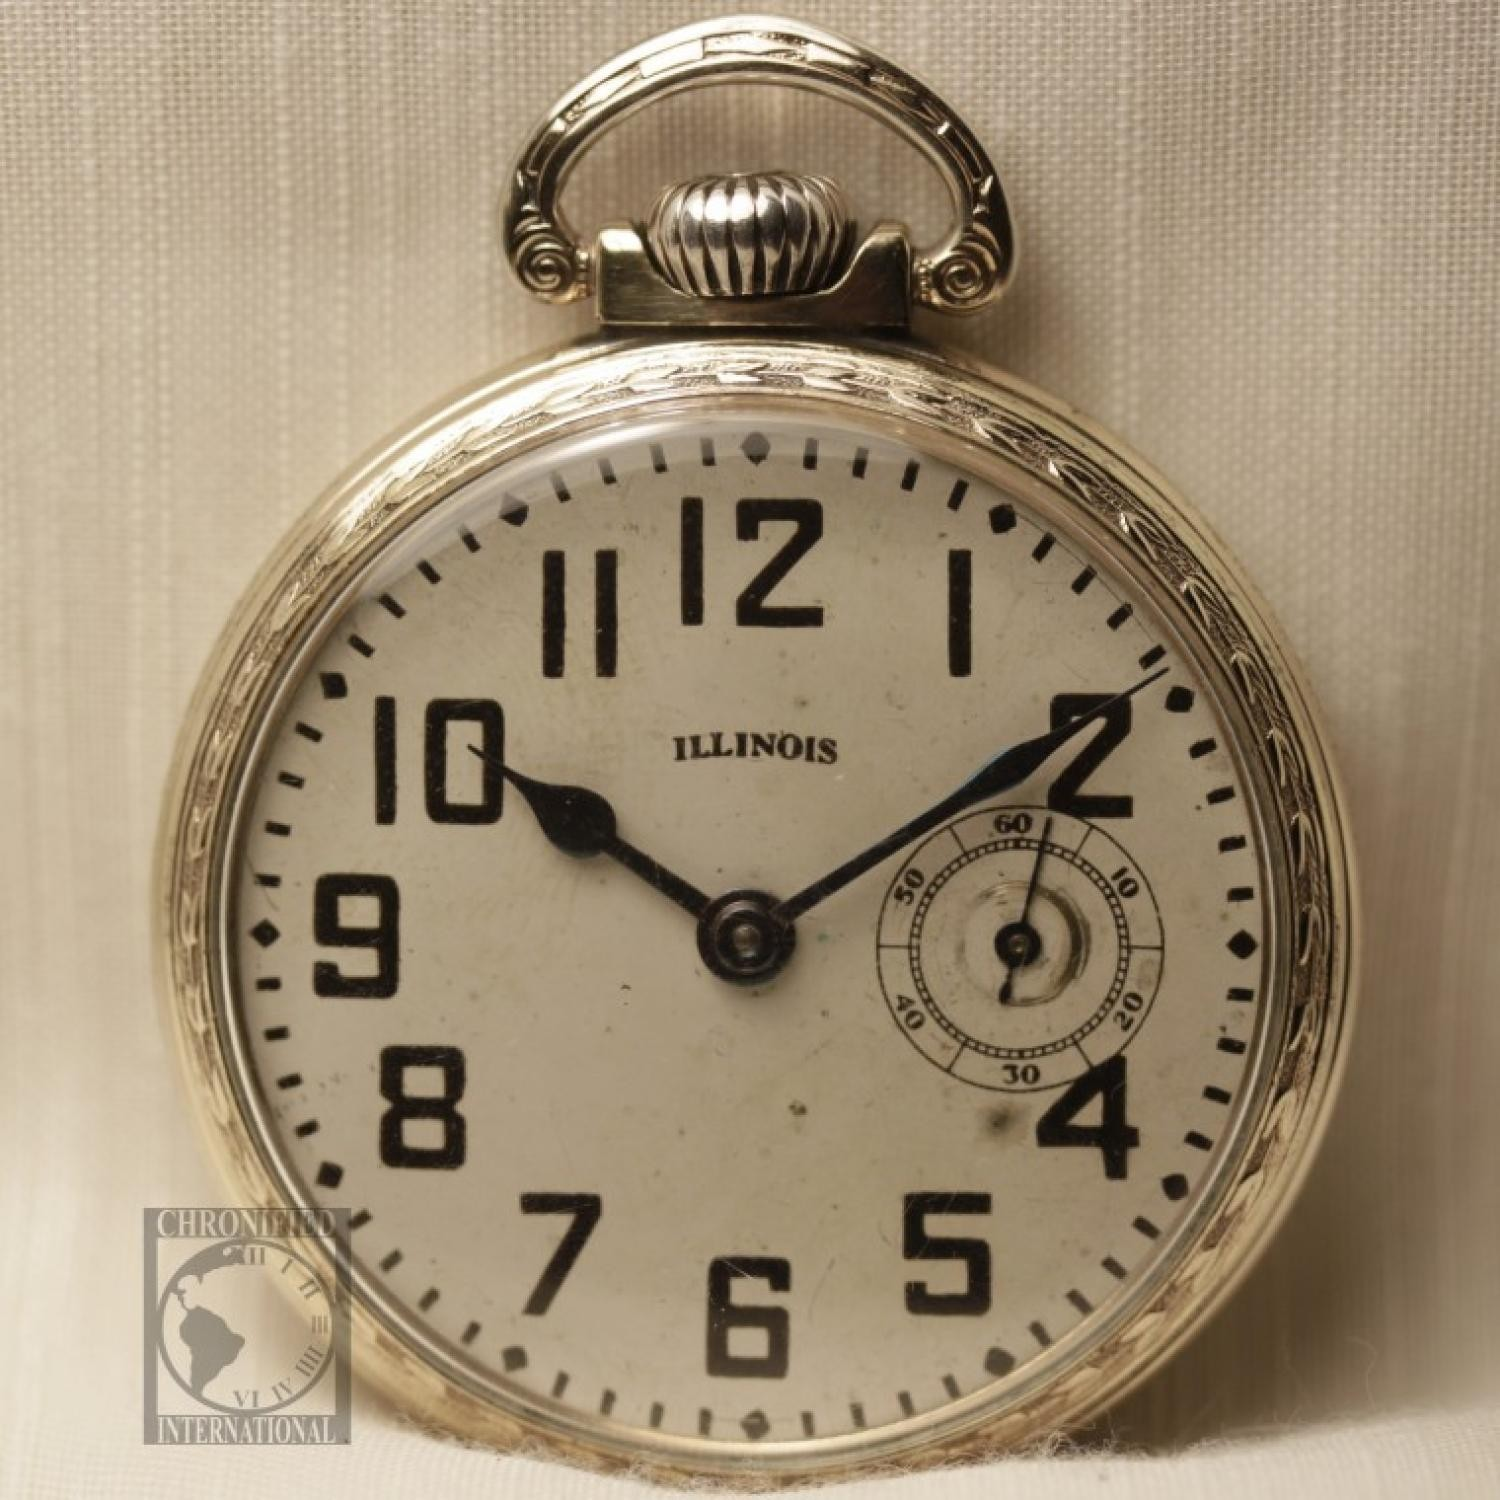 Image of Illinois 185 #1696243 Dial